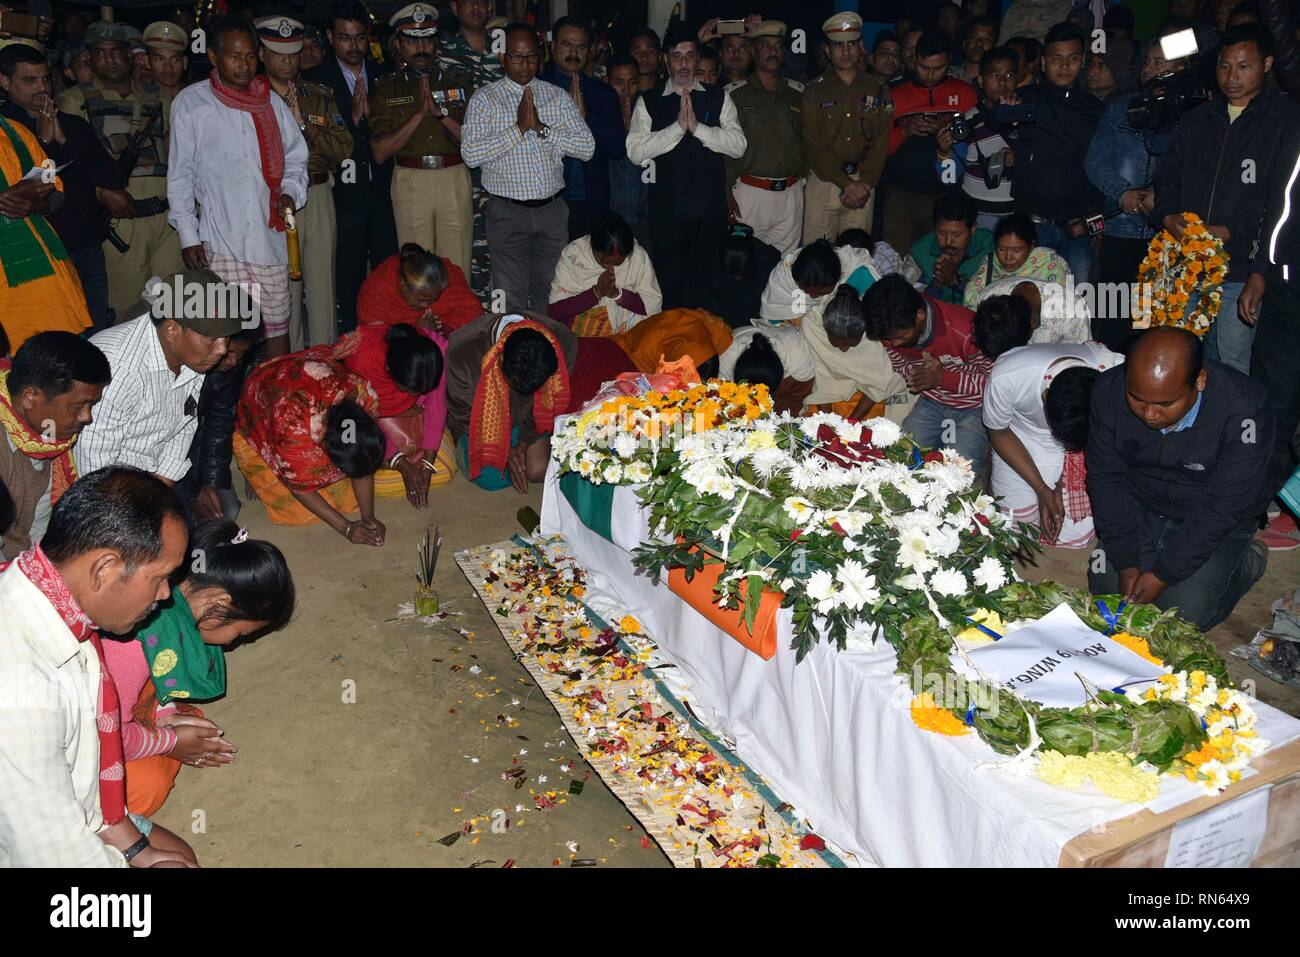 Assam, India. 16th Feb, 2019. Martyr Maneshwar Basumatary. Baksa, Assam, India. 16 February 2019. Family members and relatives and others of slain Central Reserve Police Force (CRPF) soldier, Maneshwar Basumatary mourn near his coffin before his cremation ceremony at village Tamulpur in Baksa district, Assam, India, 16 February 2019. At least 44 Indian paramilitary Central Reserve Police  Force personnel were killed and several injured when a Jaish-e-Mohammed militant rammed an explosive-laden vehicle into a CRPF convoy along the Srinagar-Jammu highway at Lethpora area in South Kashmir's Pulwa - Stock Image